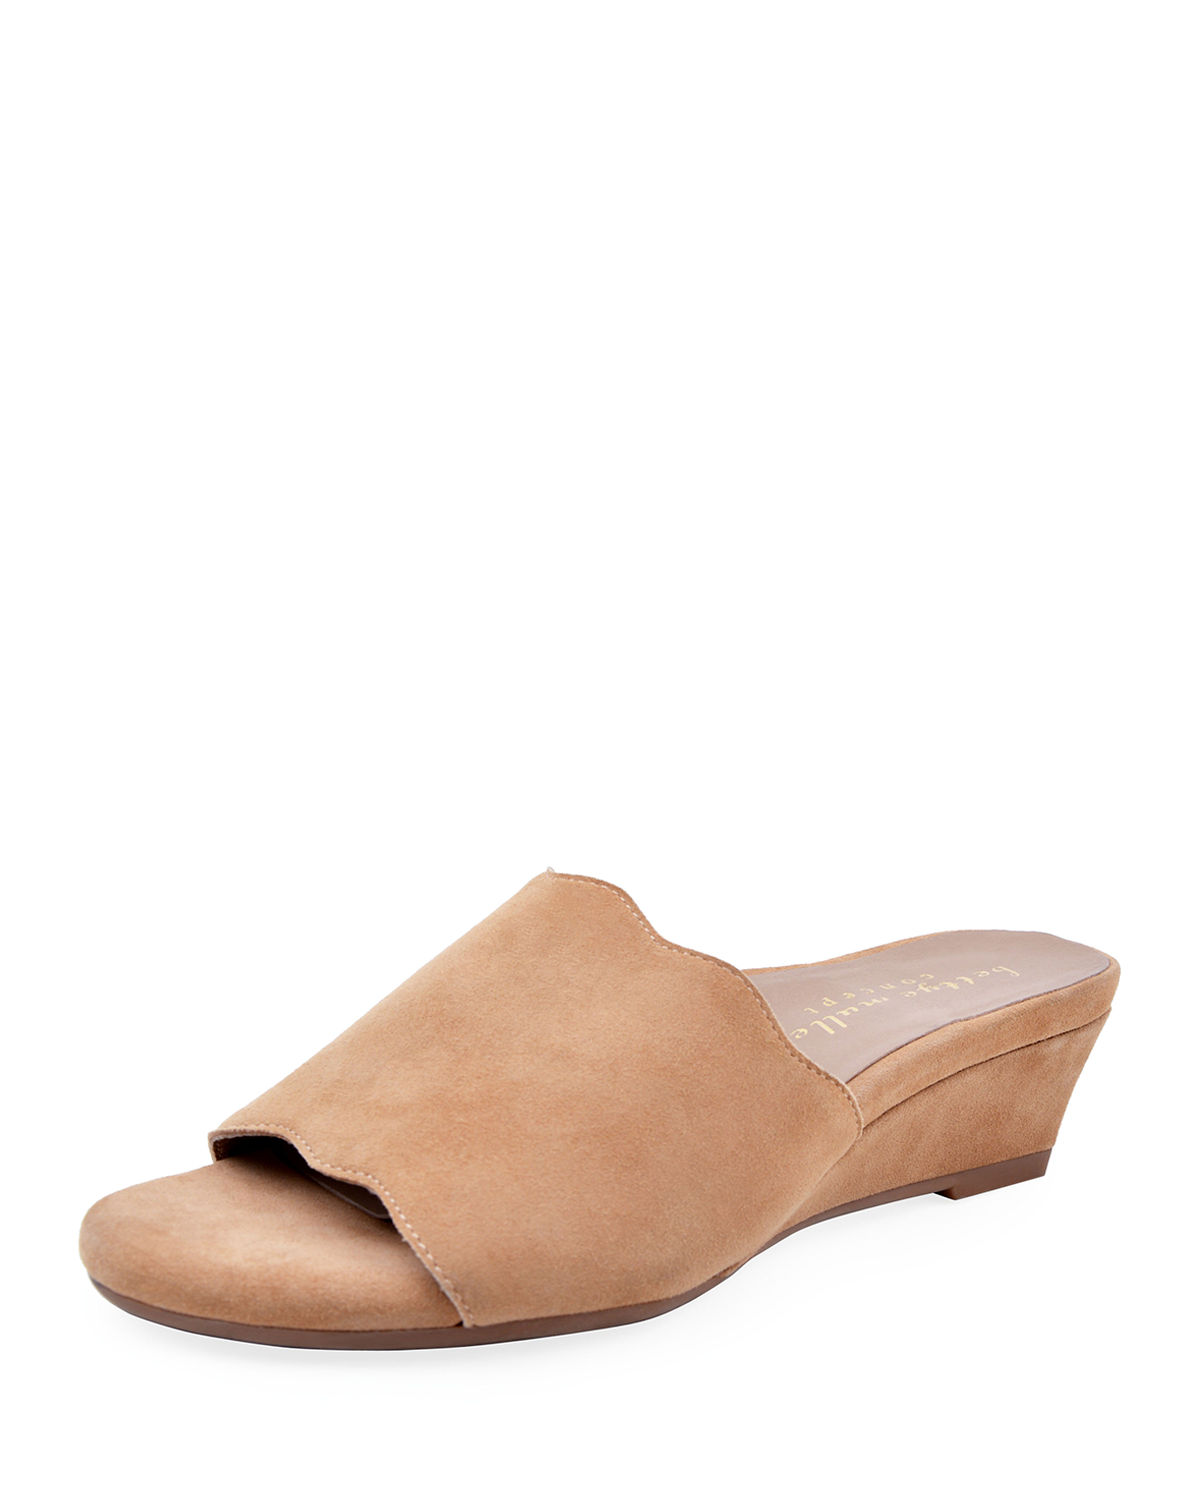 Seema Suede Demi-Wedge Slide Sandals